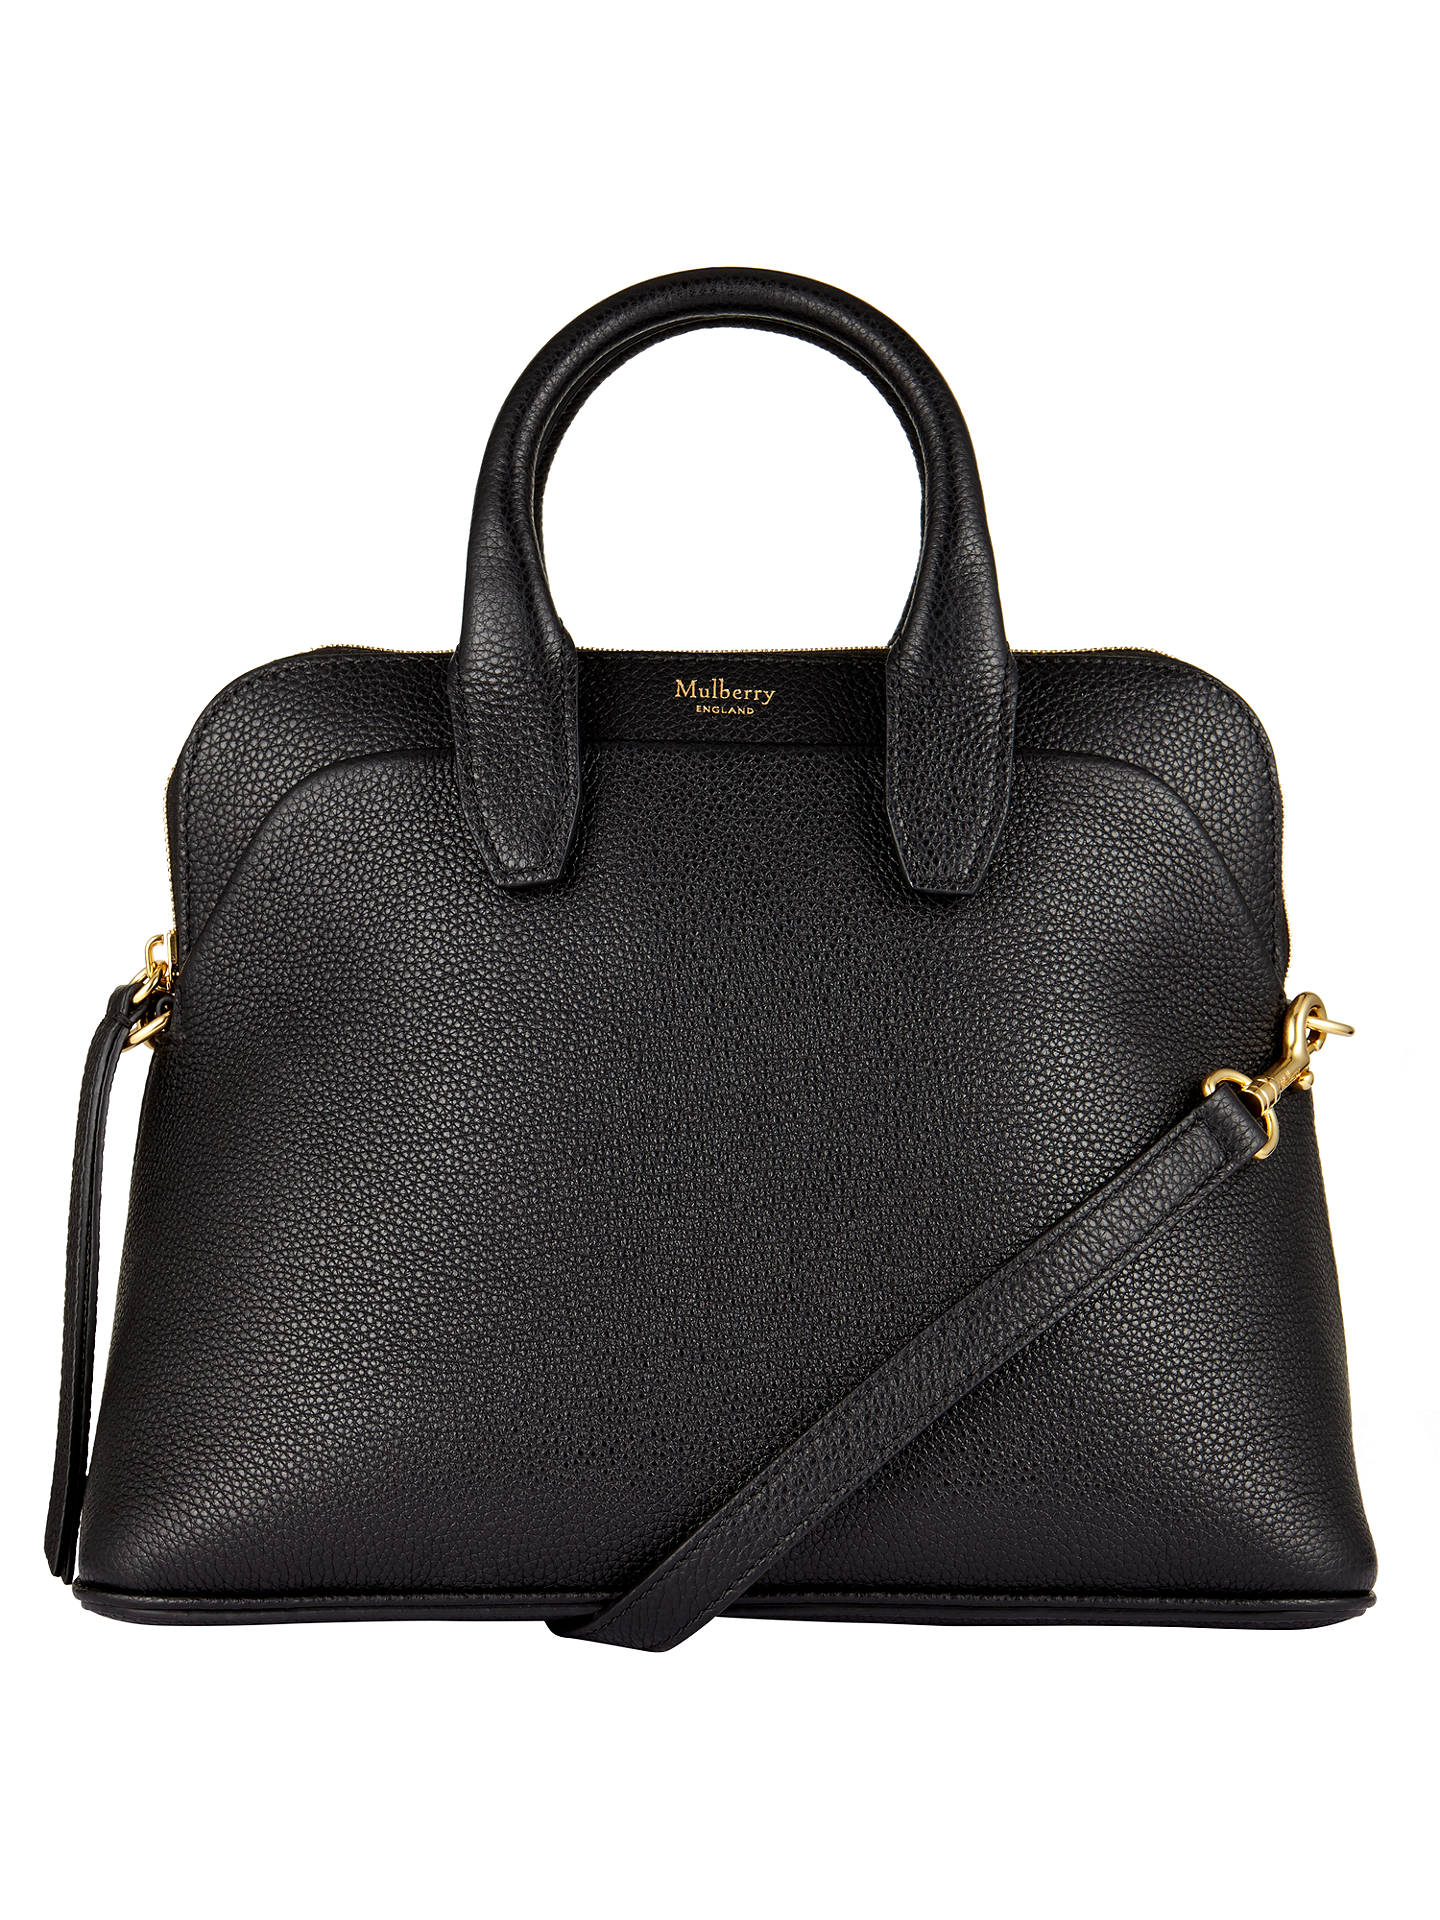 BuyMulberry Colville Small Leather Tote Bag, Black Online at johnlewis.com  ... dc82d23271